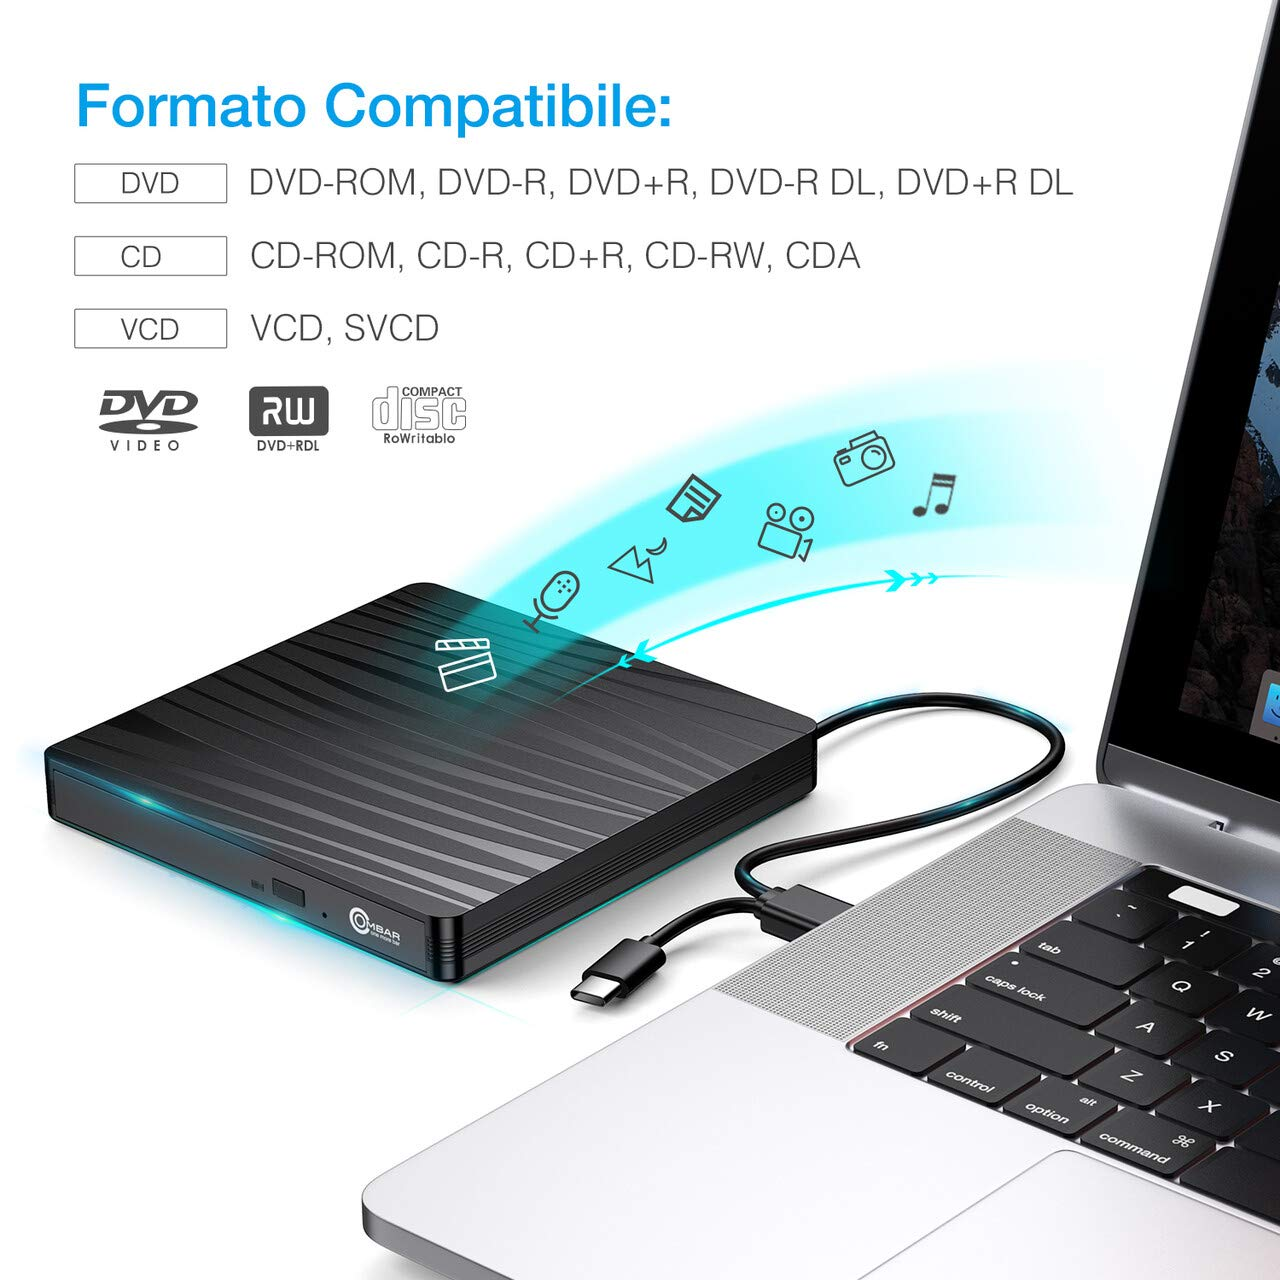 OMBAR Unità Ottica Esterna CD DVD , USB 3.0 e Tipo-C Dual Port Adatto per Laptop, Desktop, Mac, Macbook, IOS, Windows 10/8.1/7 e Linux, Nero